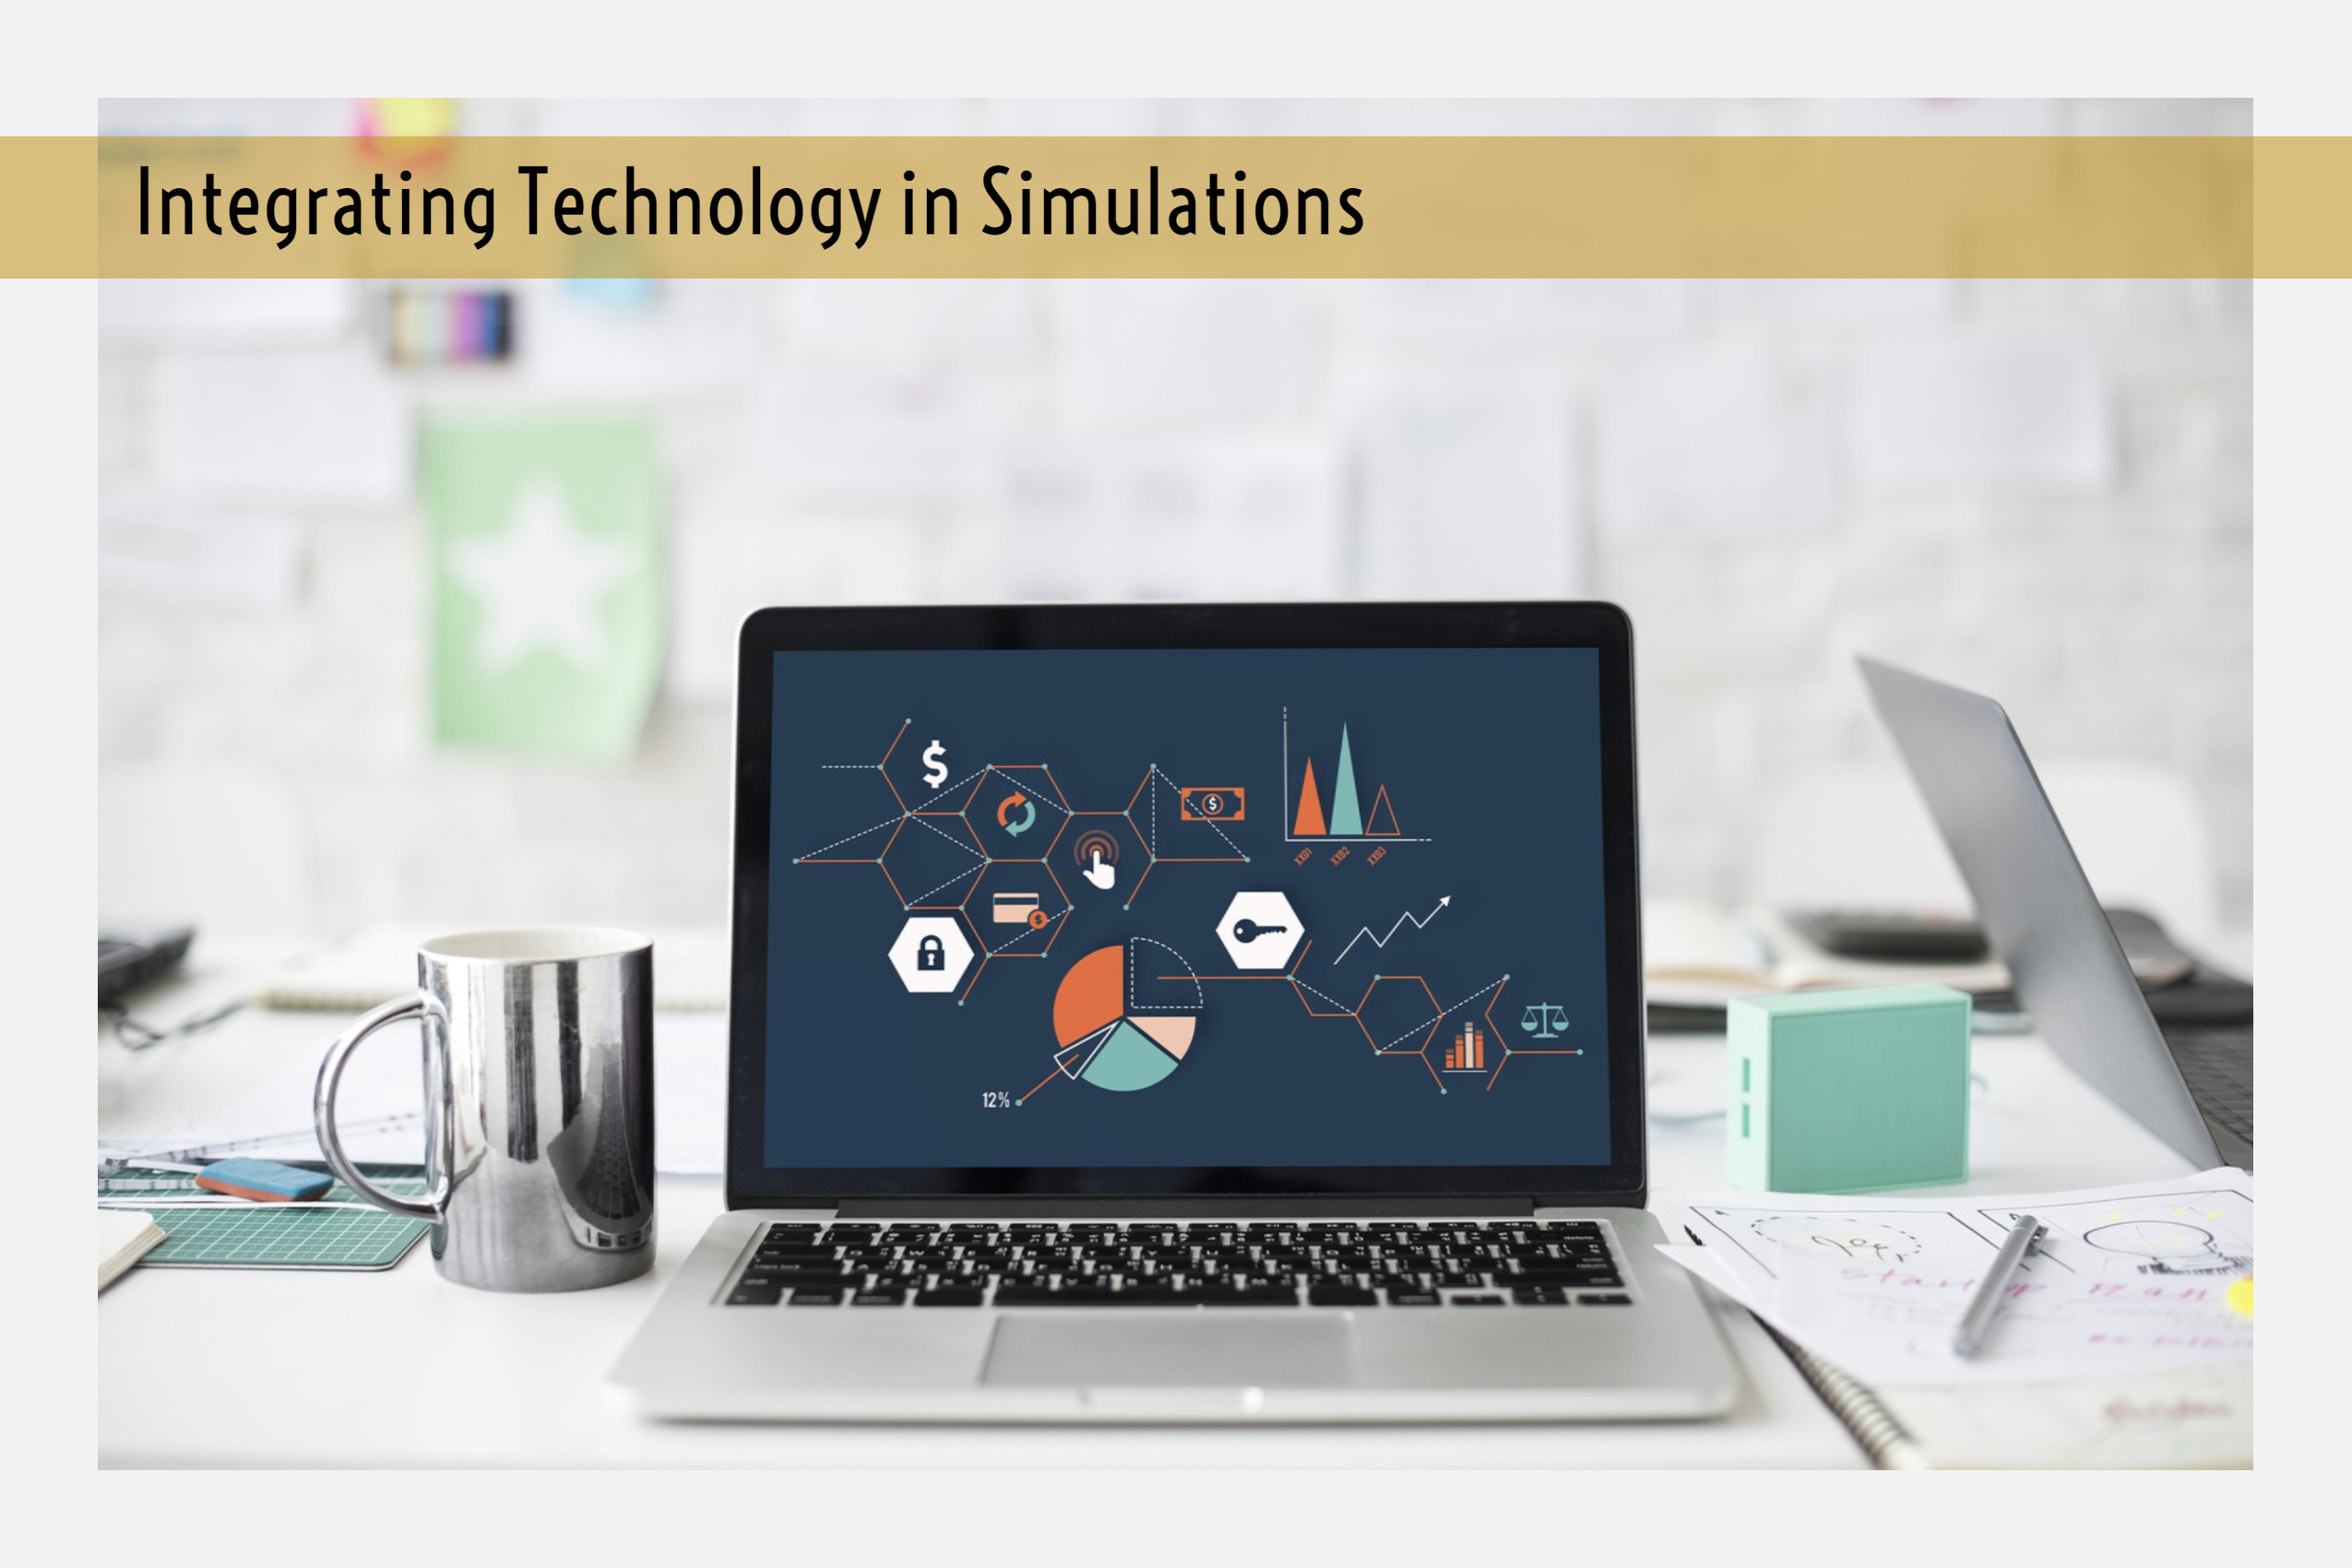 Step 3 Integrating Technology In Simulations